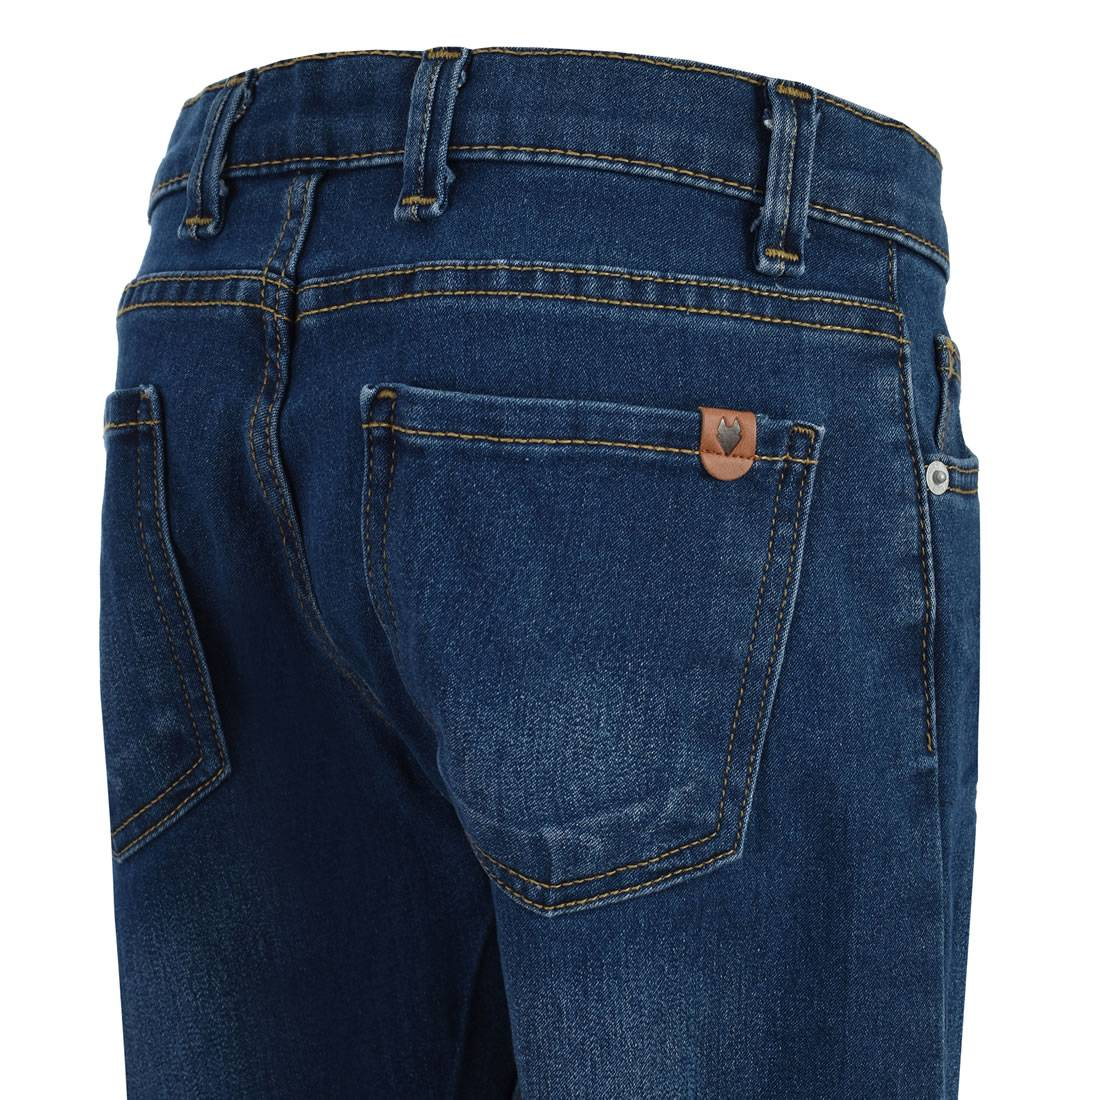 021403206917-04-Jeans-Boys-Boot-Cut-Hand-Sand-Whiskers-Con-Elastano-Cintura-Ajustable-Super-Stone-yale